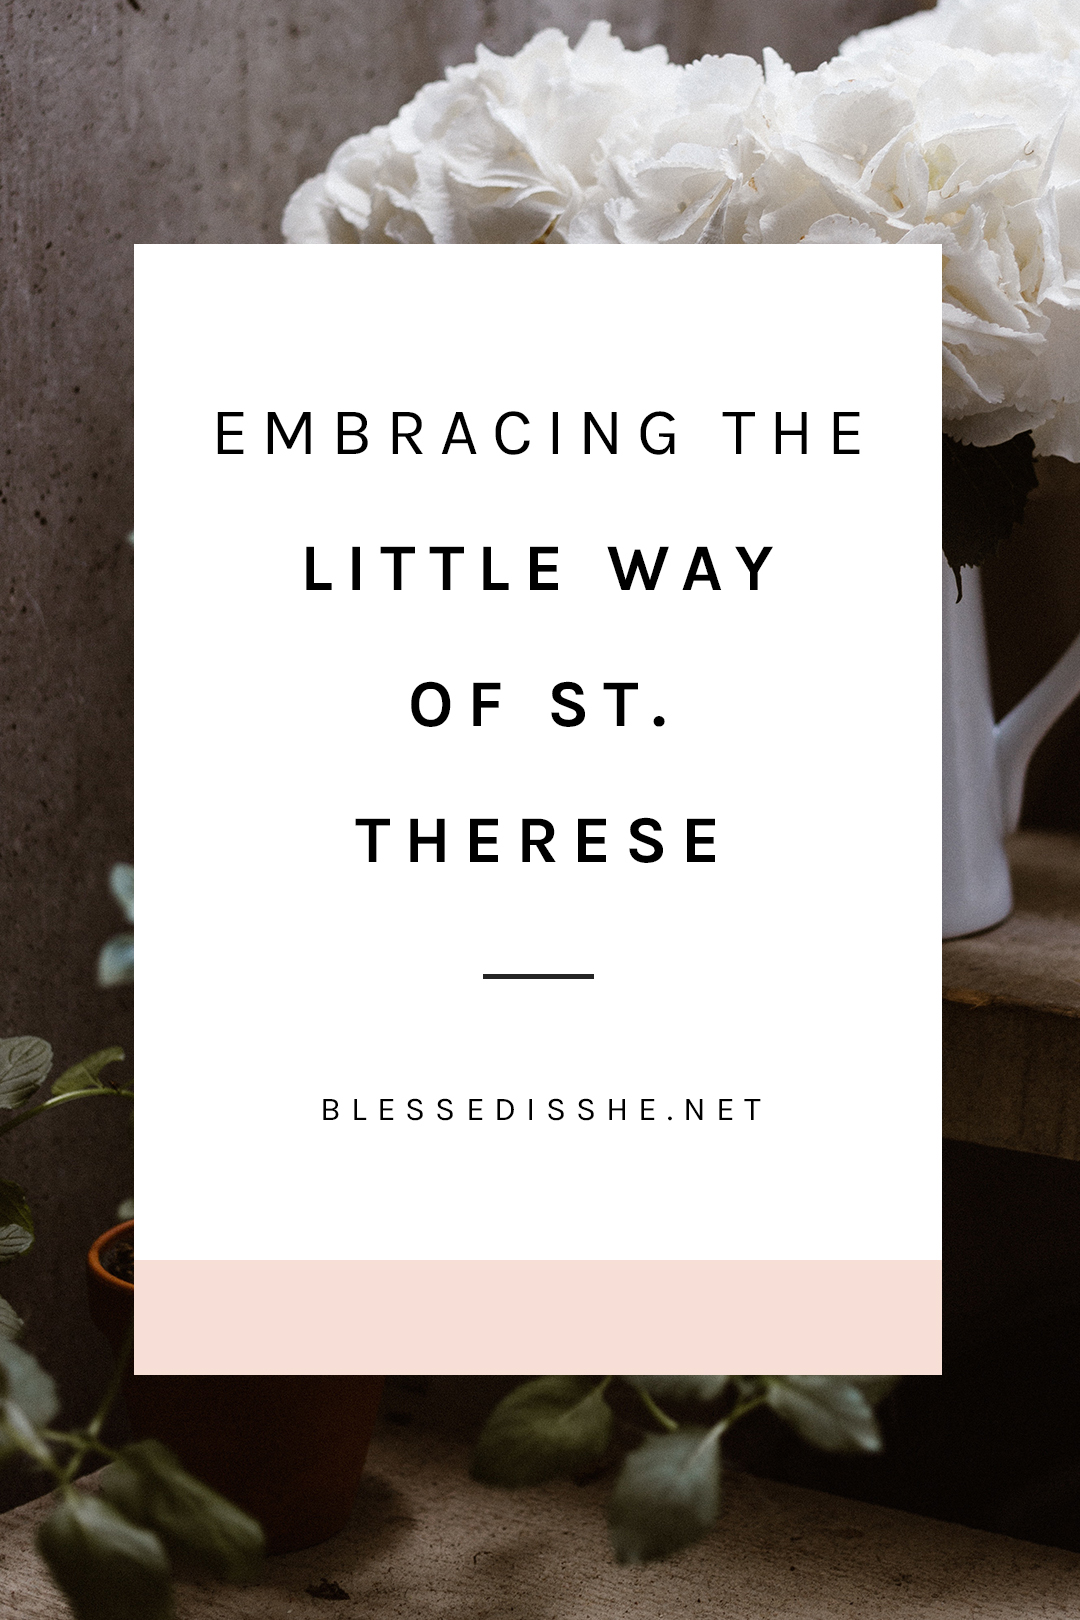 the little way of st. therese